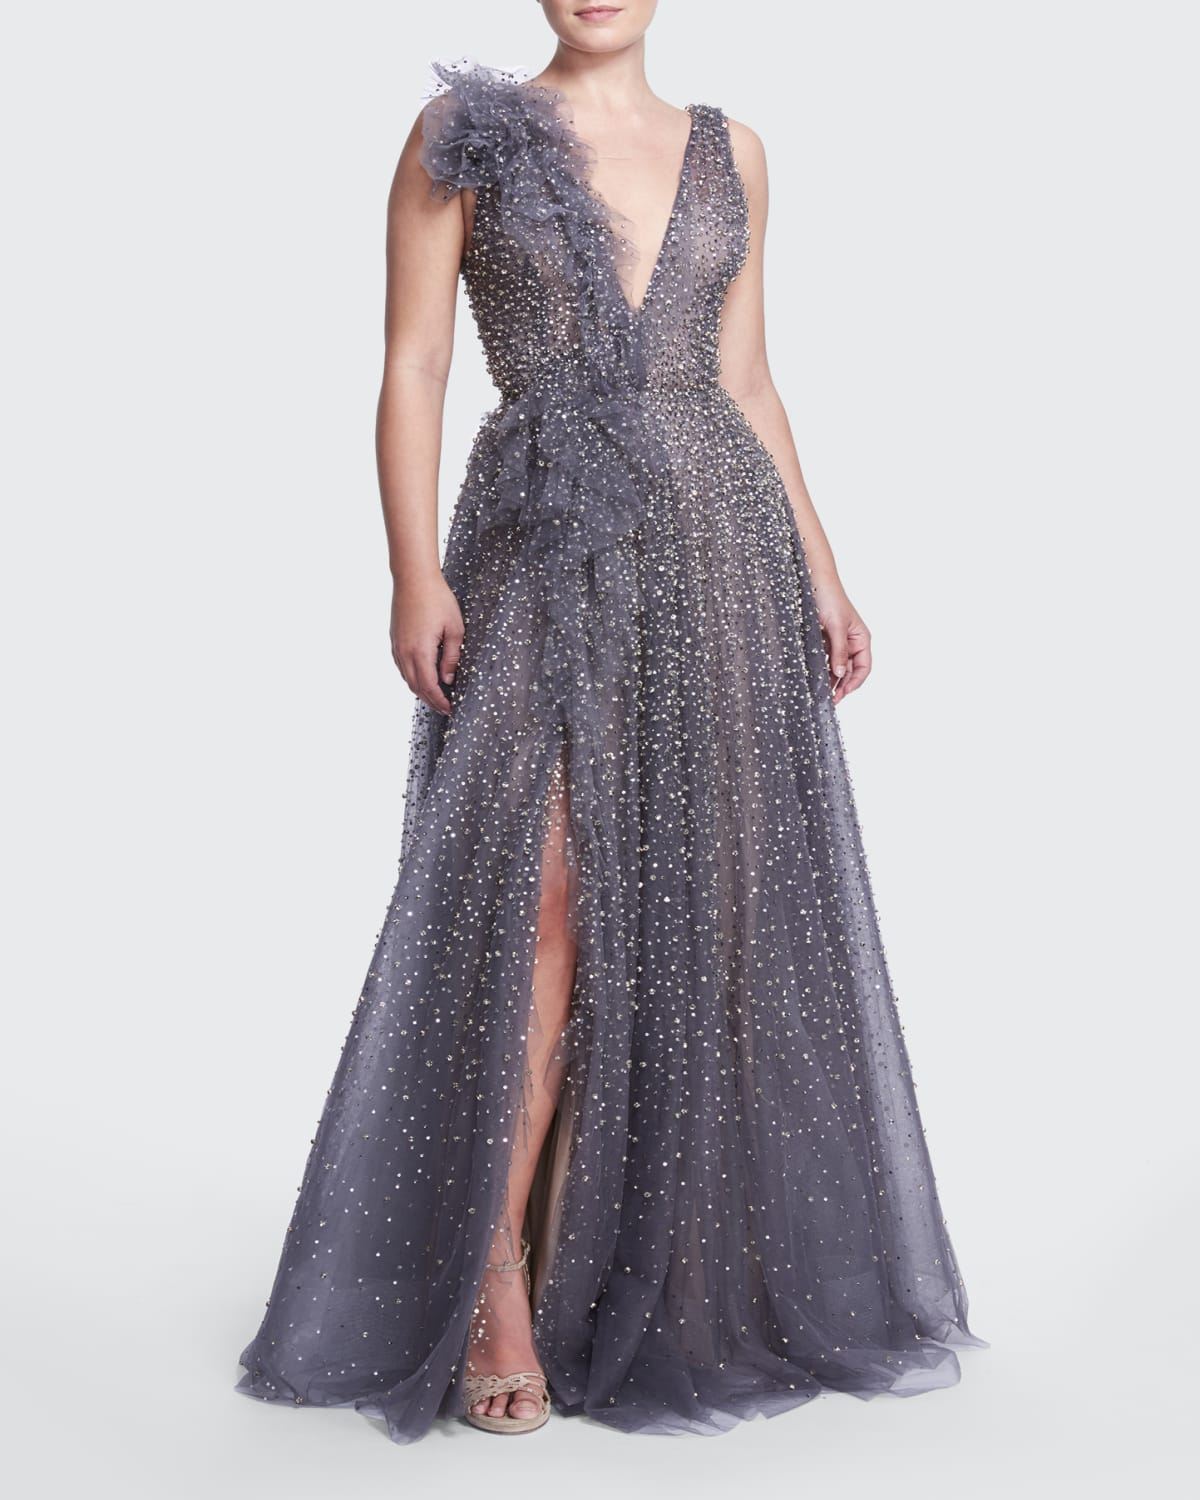 Crystal-Embellished Gown w/ Ruffle Draping